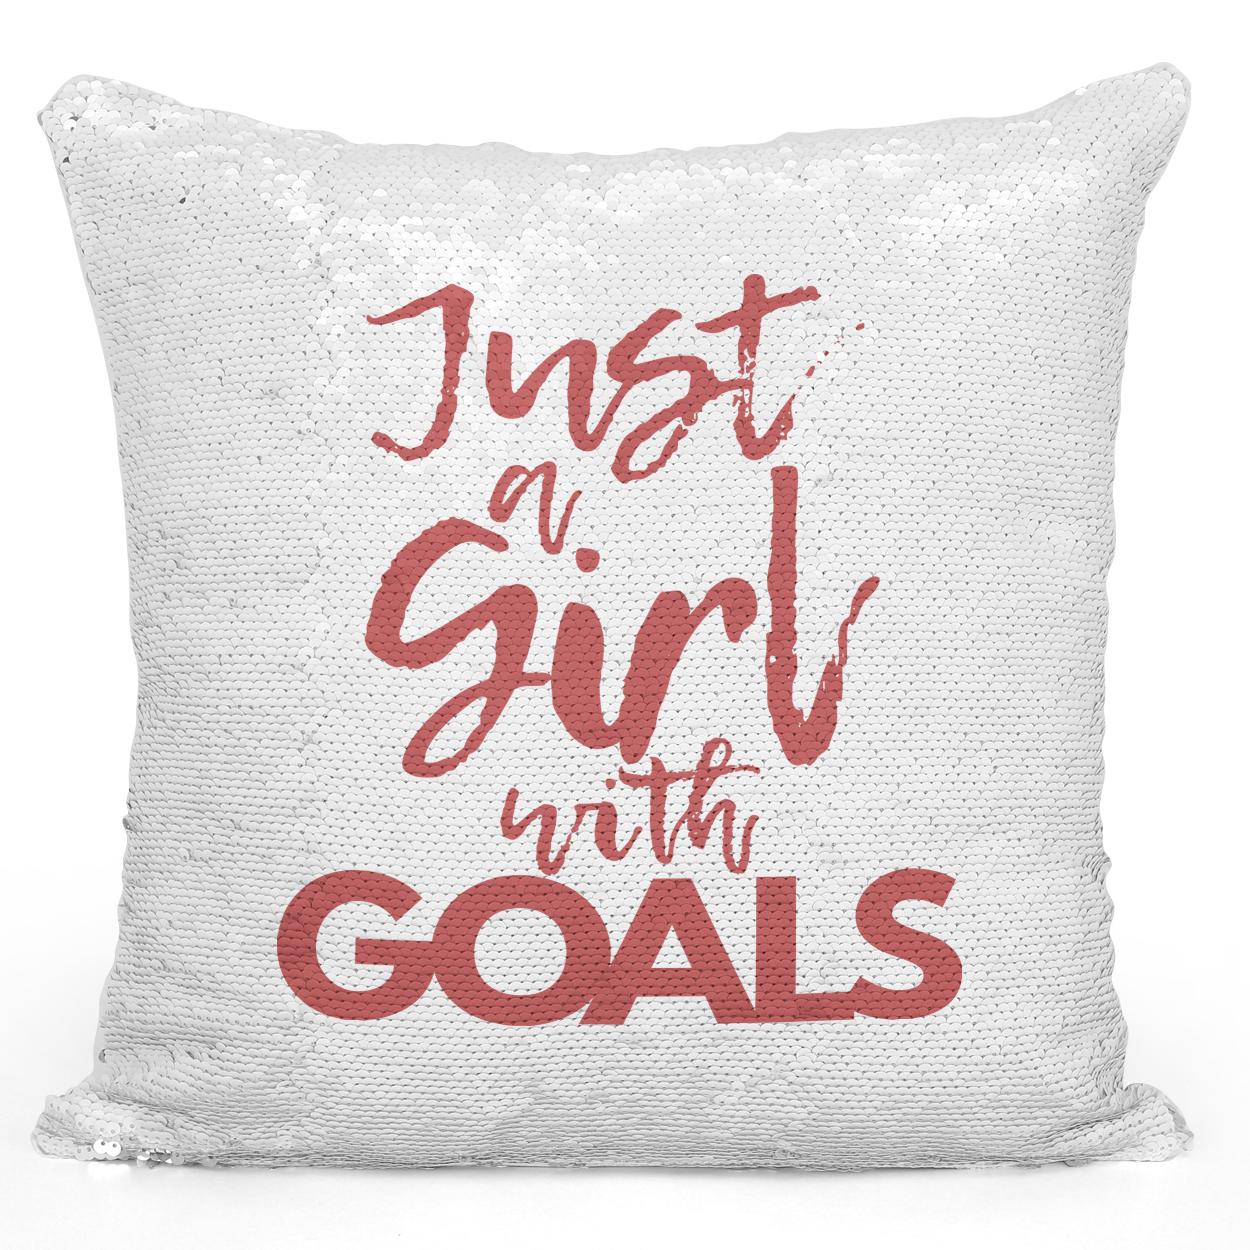 16x16 inch Sequin Throw Pillow Magic Flip Pillow Just a Girl With Goals Women Female Pillows Loud Universe